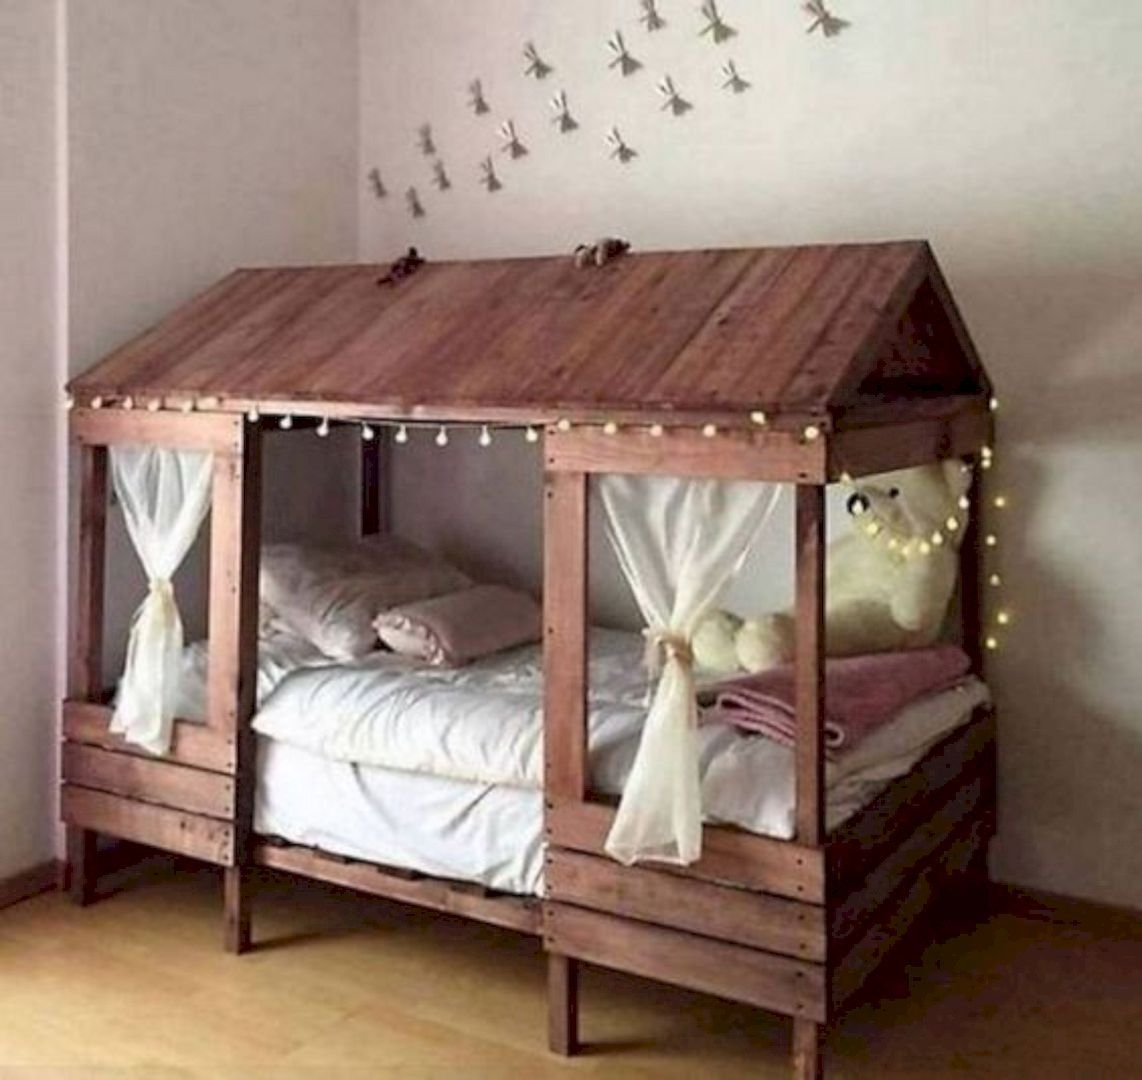 17 Excellent And Creative Ideas For Pallet Furniture Furniture